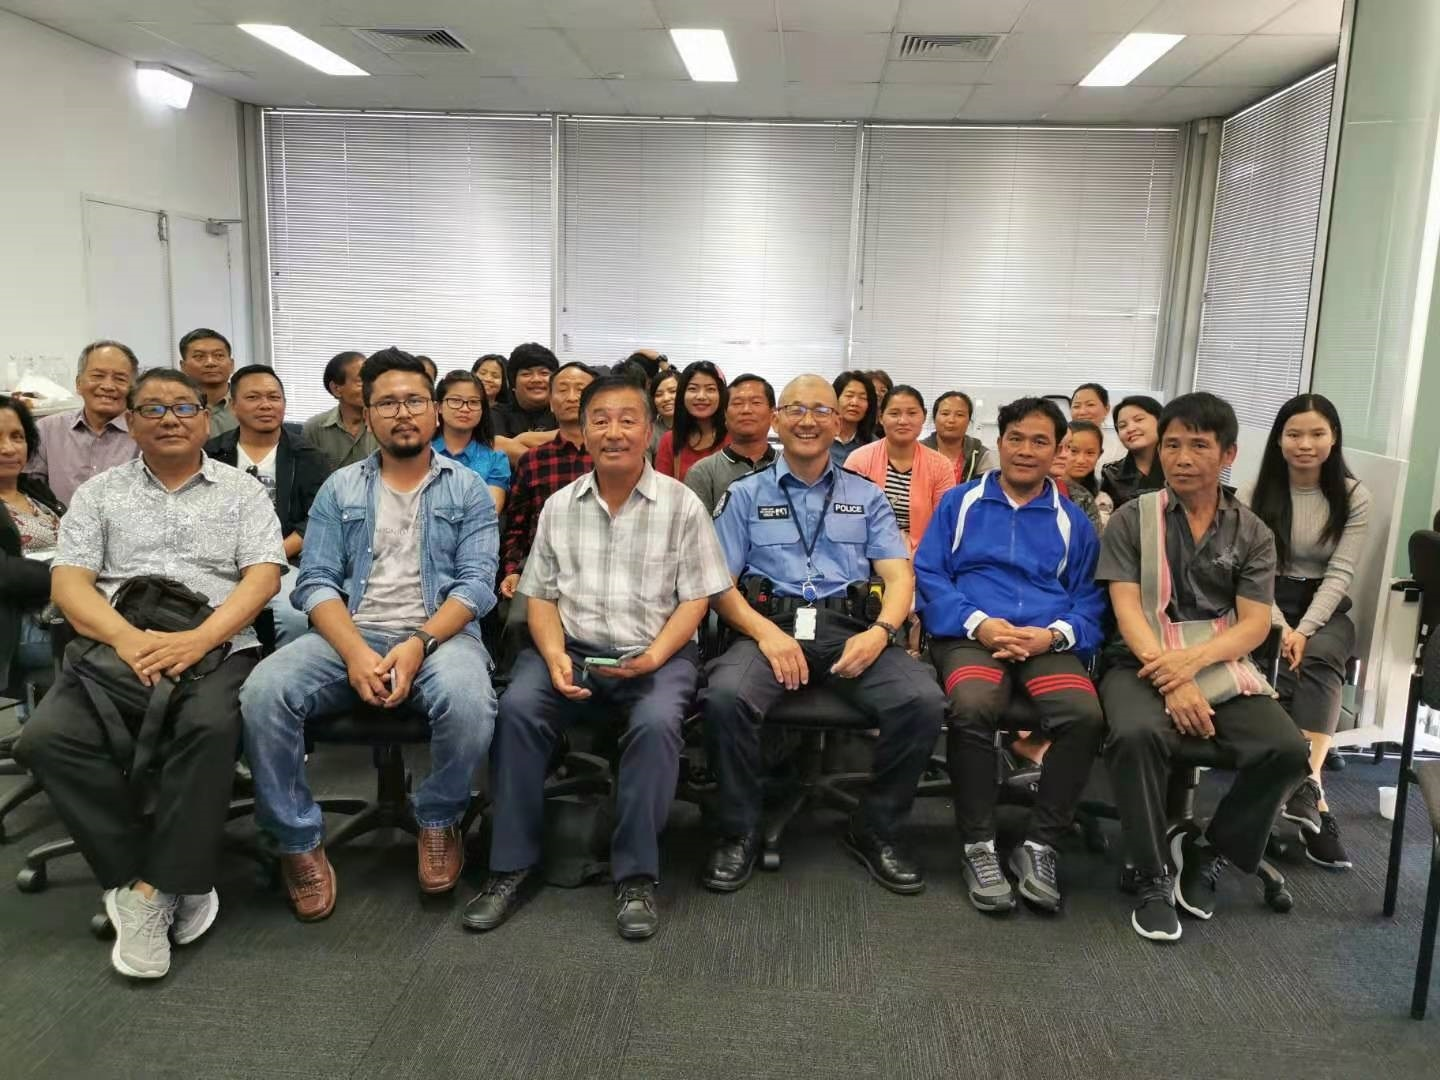 Sam Lim and multicultural community